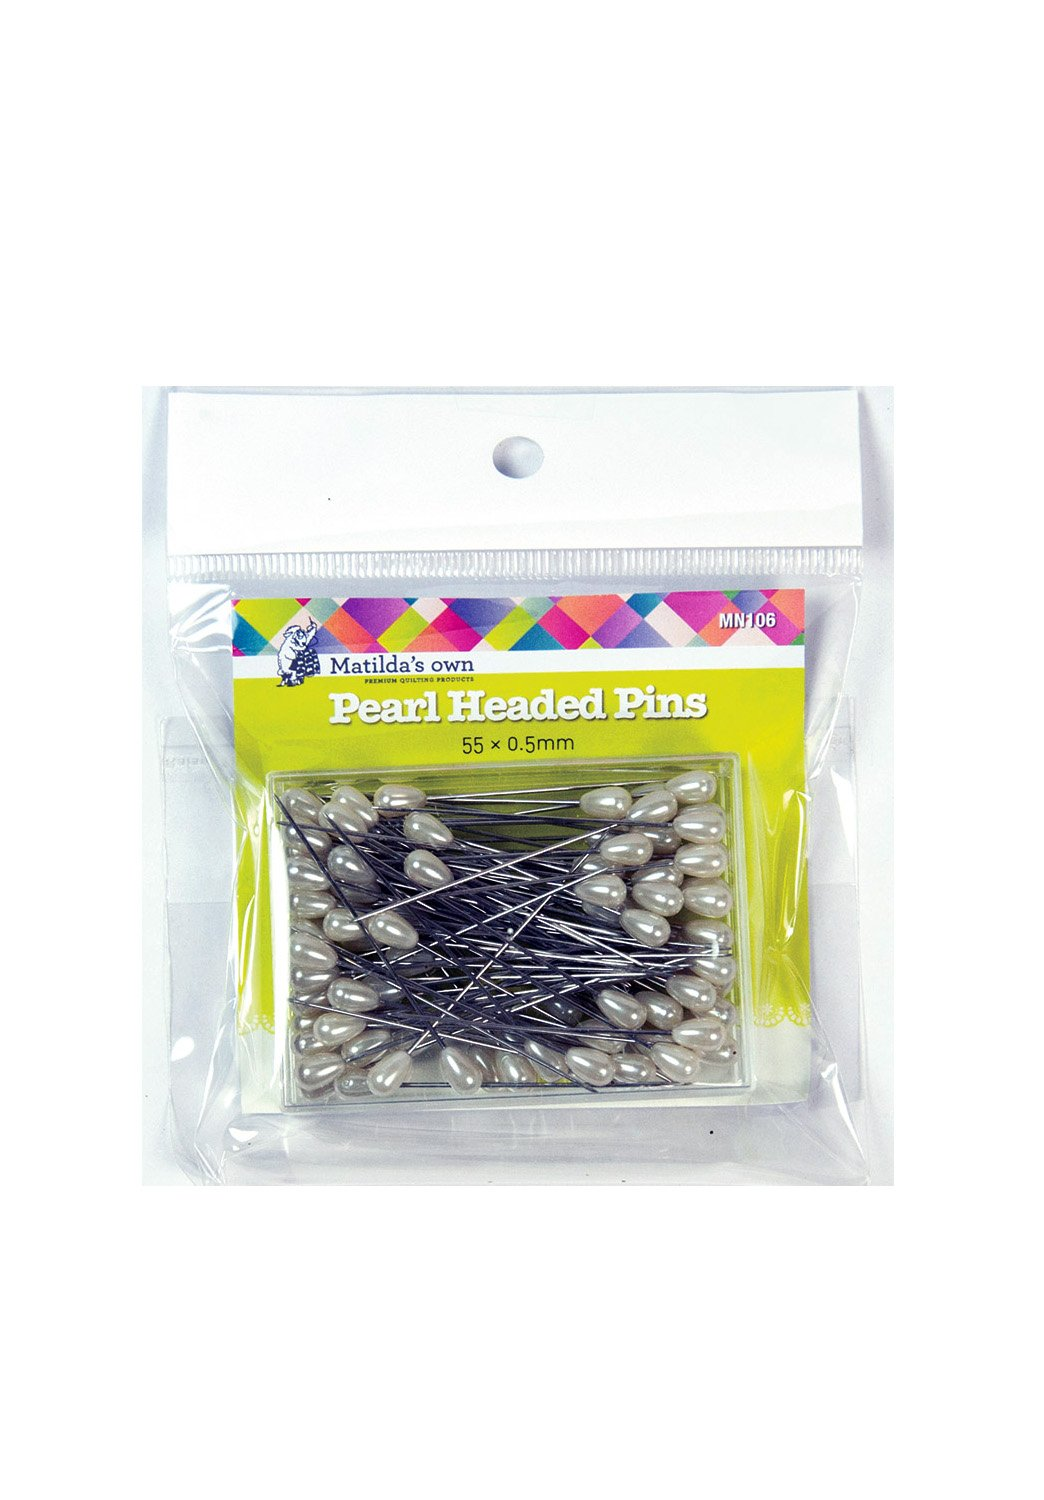 Matilda's Own Pearl Head Pins Applique Dressmaking Quilting Bulk Buy Discount Price Quantity Premium Quality Australia